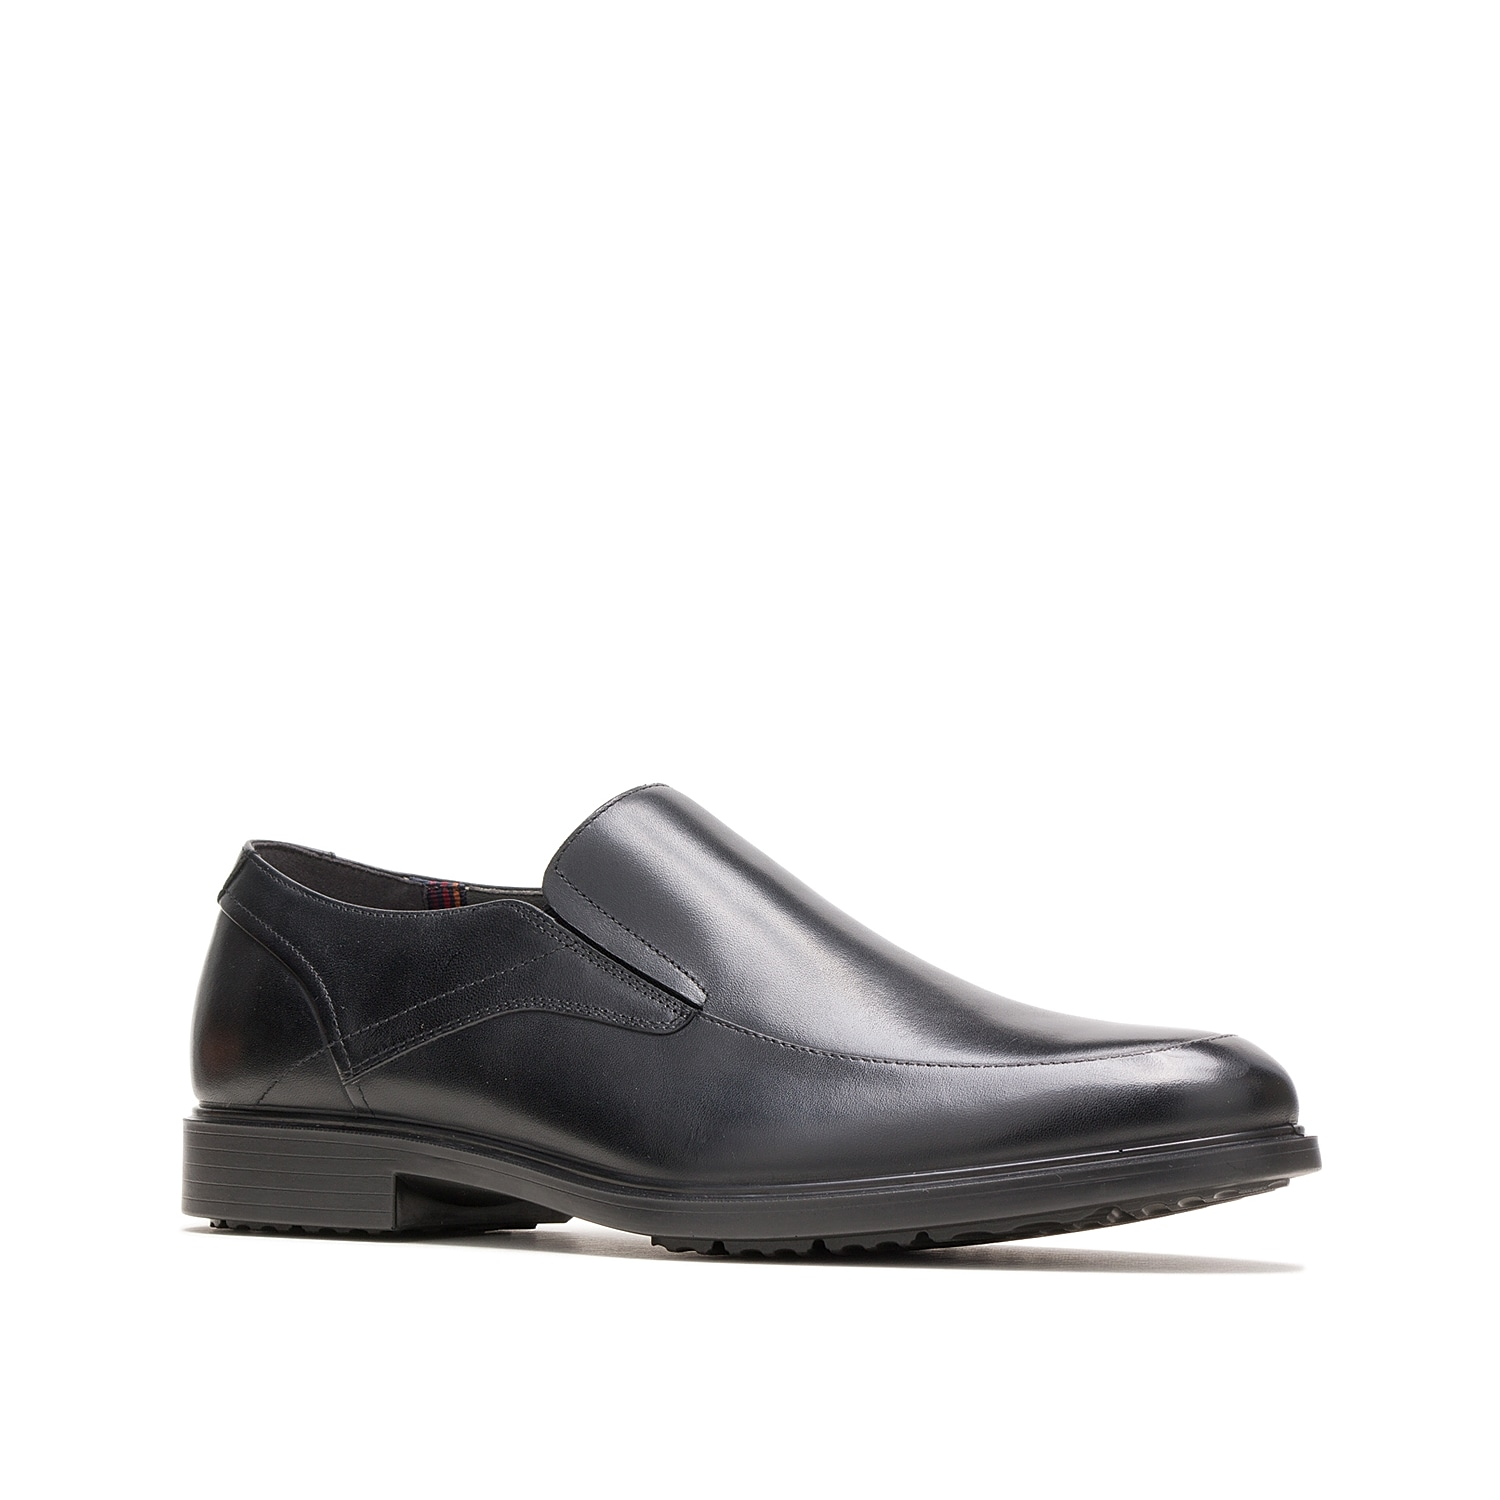 The Turner slip-on from Hush Puppies rocks a classic silhouette with modern technology. This leather pair features a water-resistantWeatherSMART™ upper, BioDeWix™ Dry mesh lining, andBounce™ energy rebound footbed to keep you feeling your best.